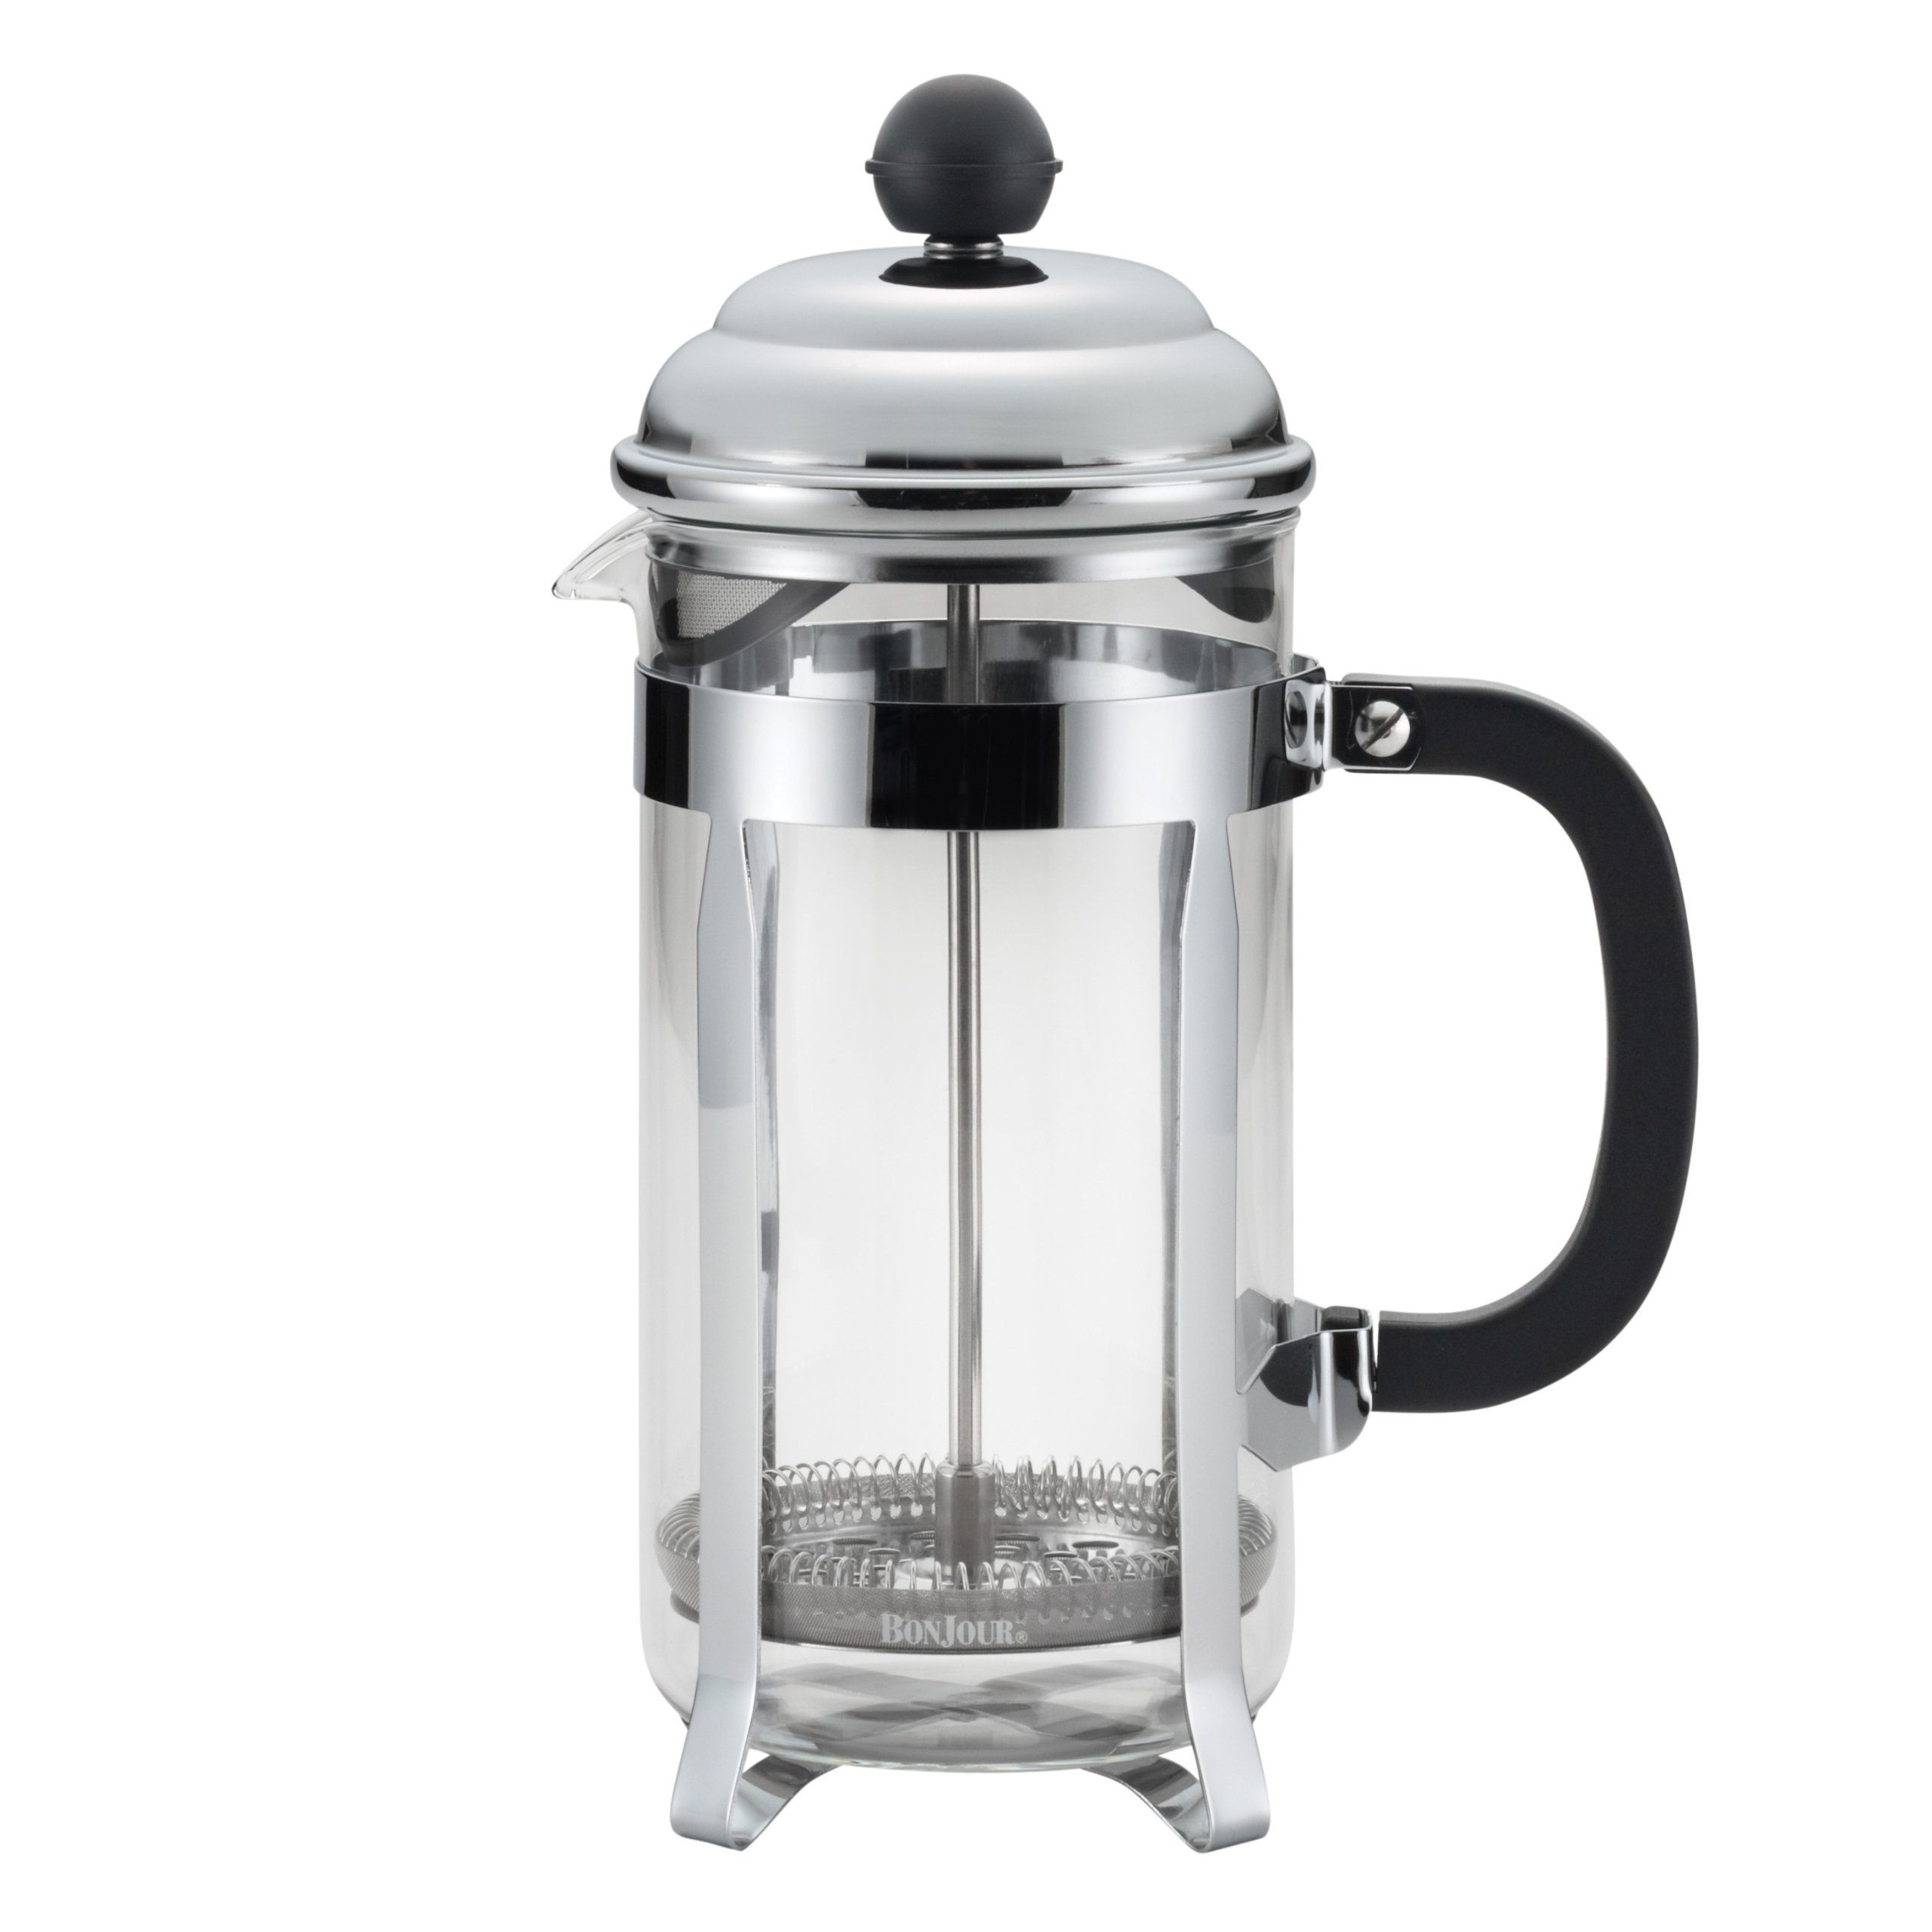 BonJour Coffee Stainless Steel French Press with Glass Carafe, 33.8-Ounce, Bijoux, Black Handle